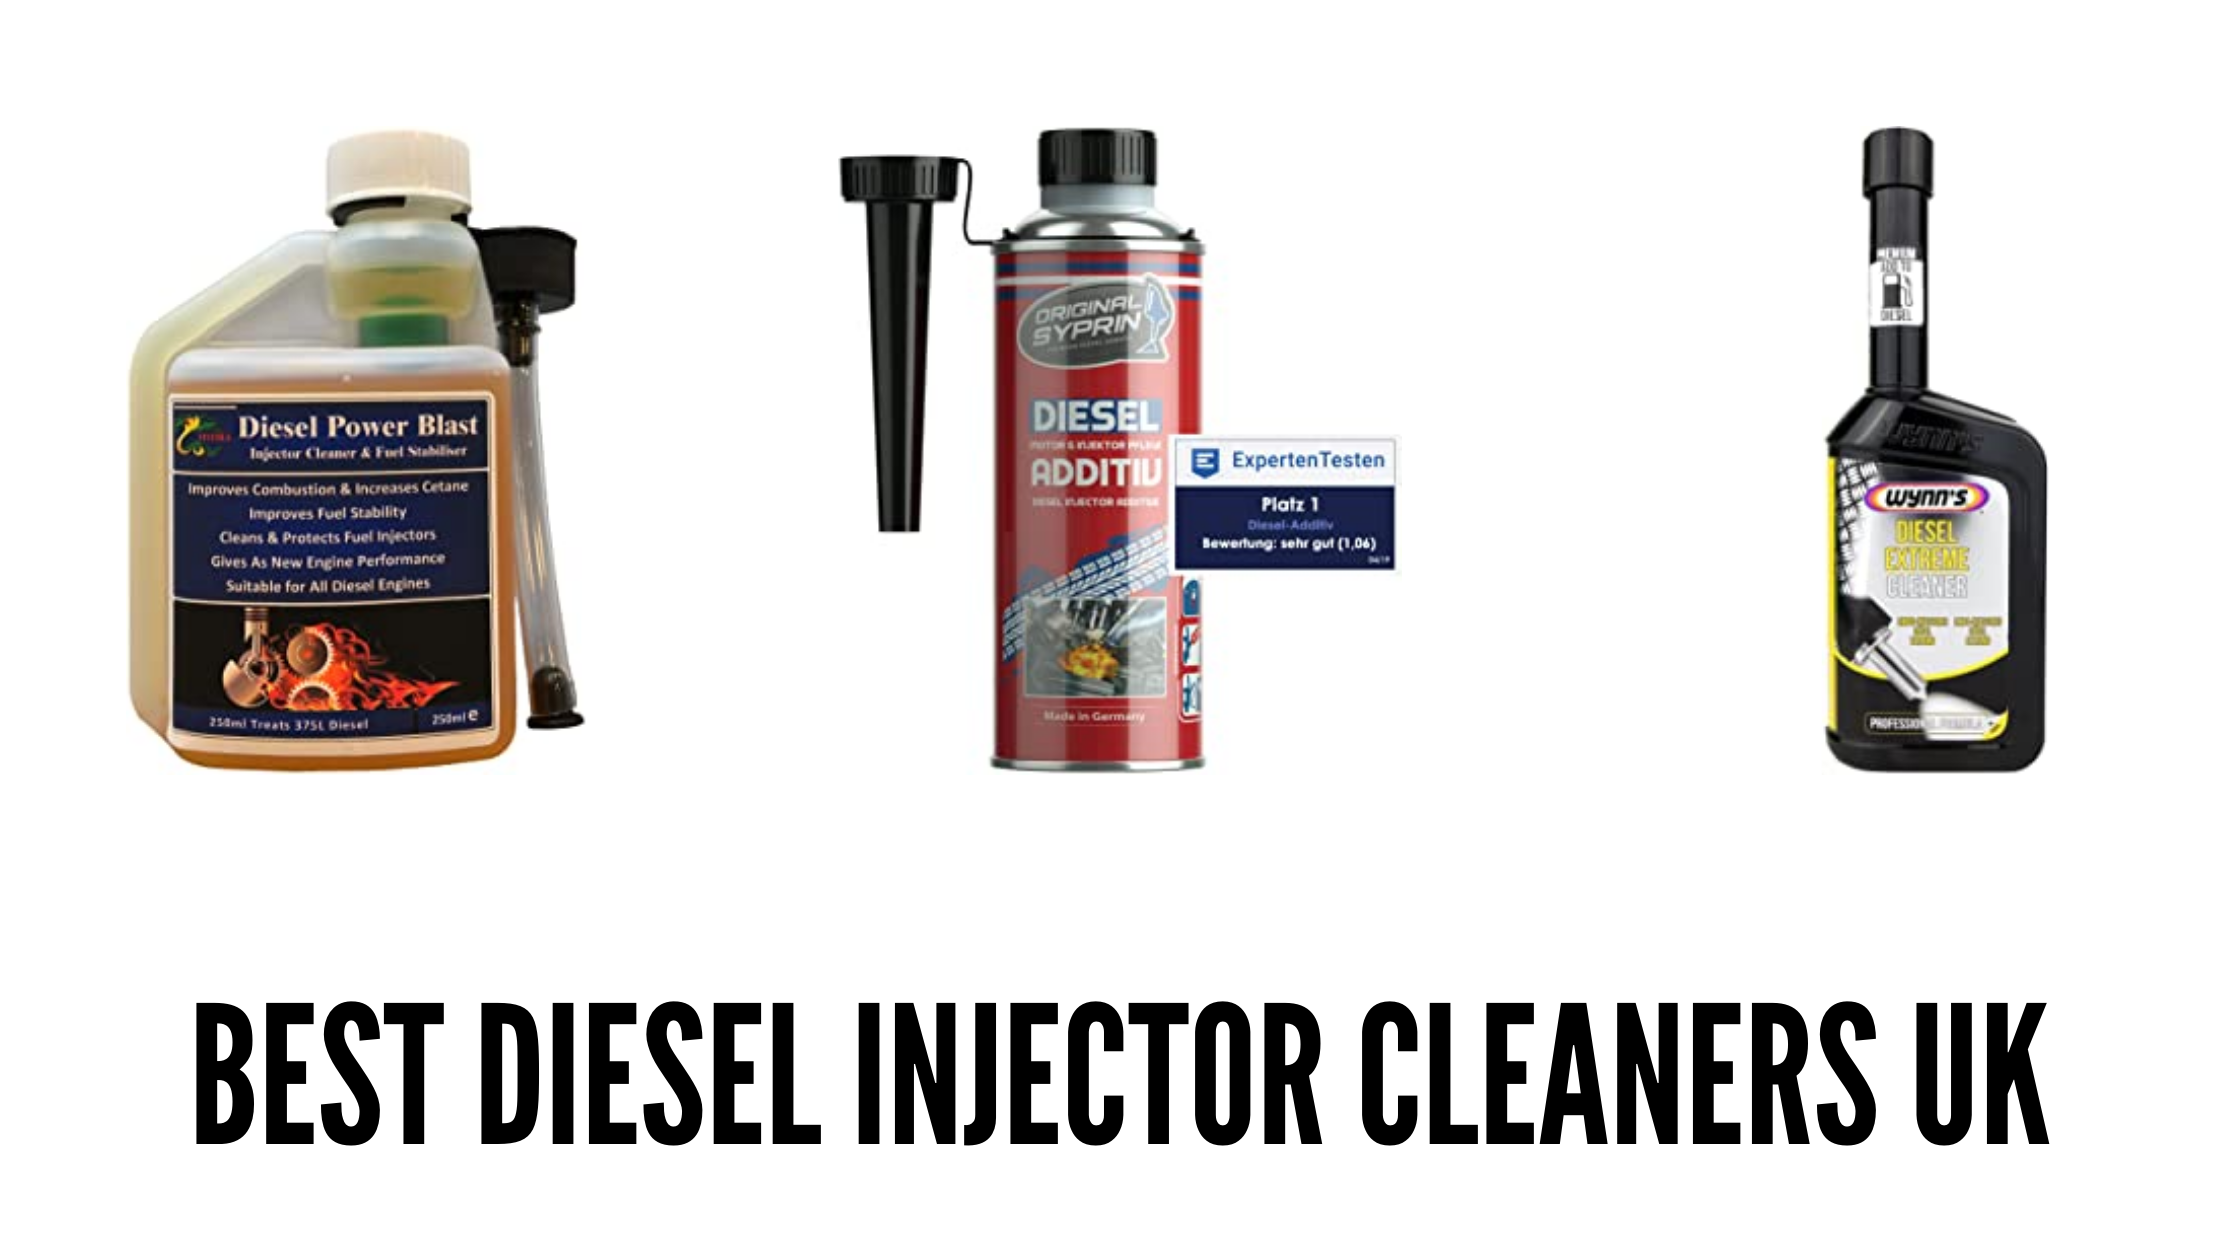 UK Diesel Injector Reviews With Videos